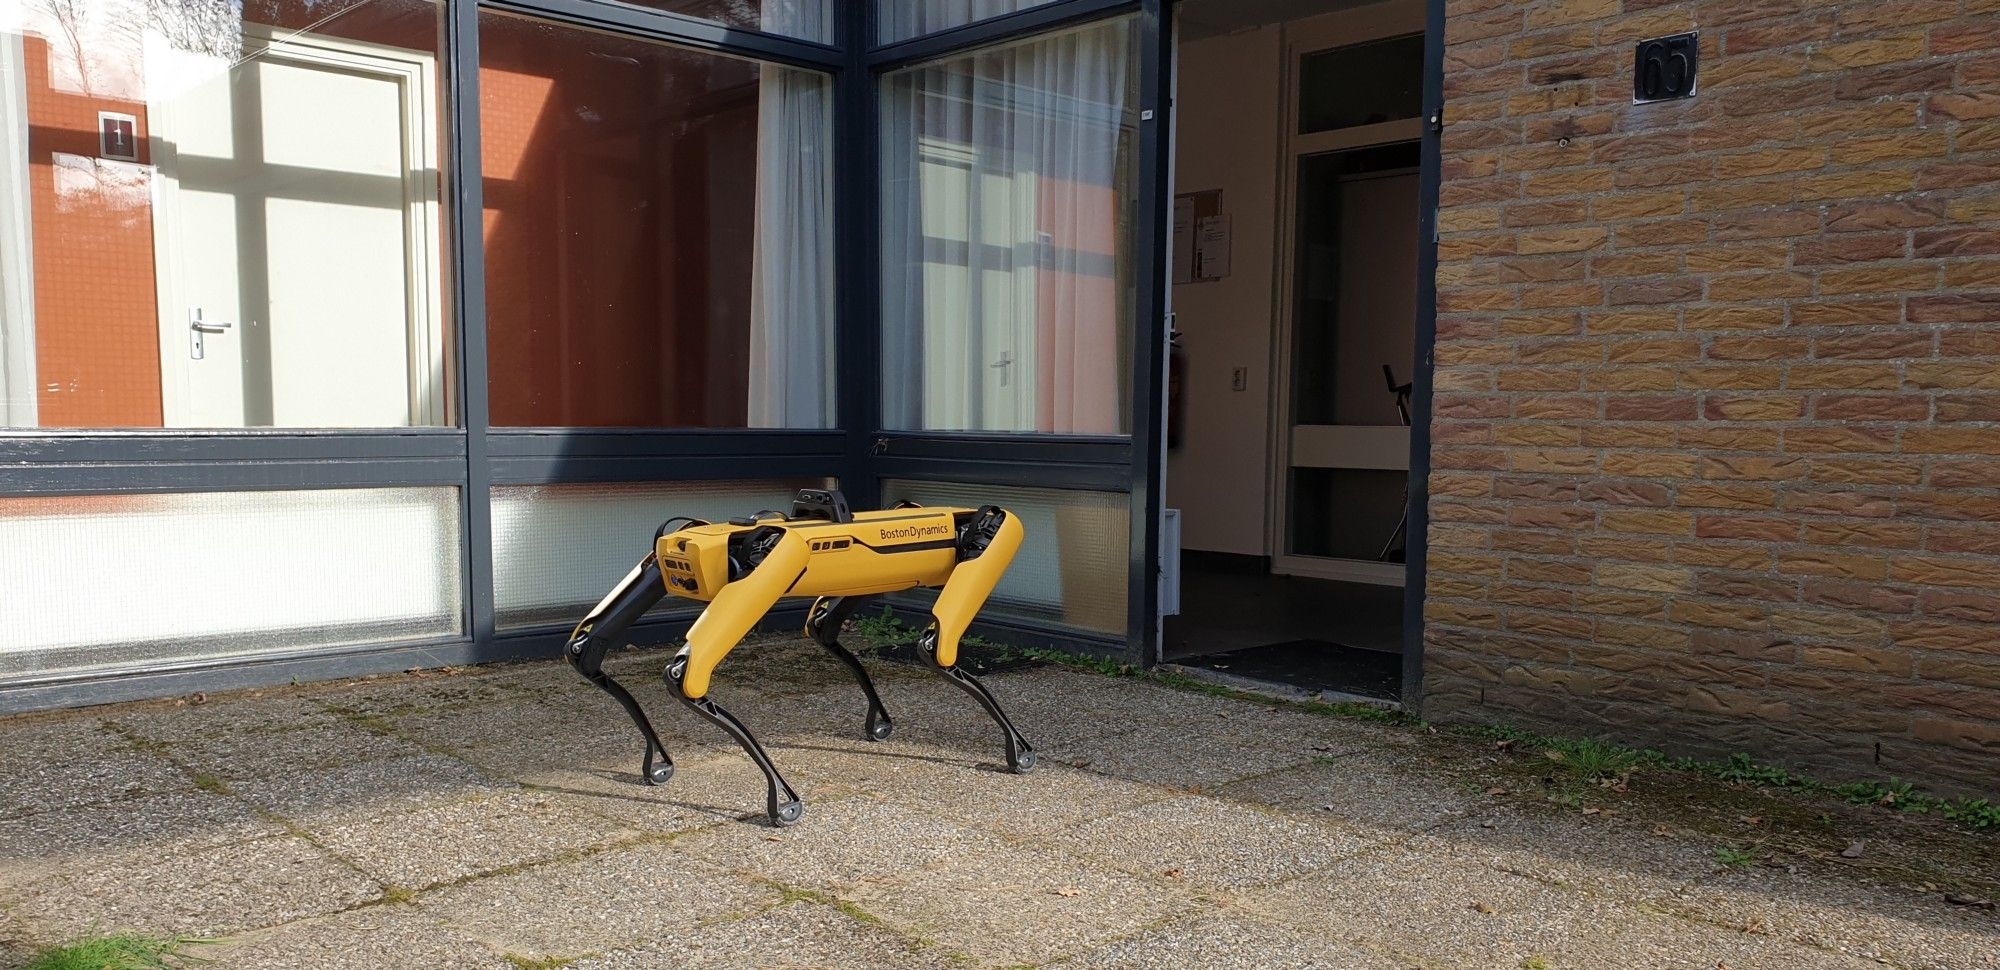 /object-recognition-with-spot-from-boston-robotics-9g2m347j feature image